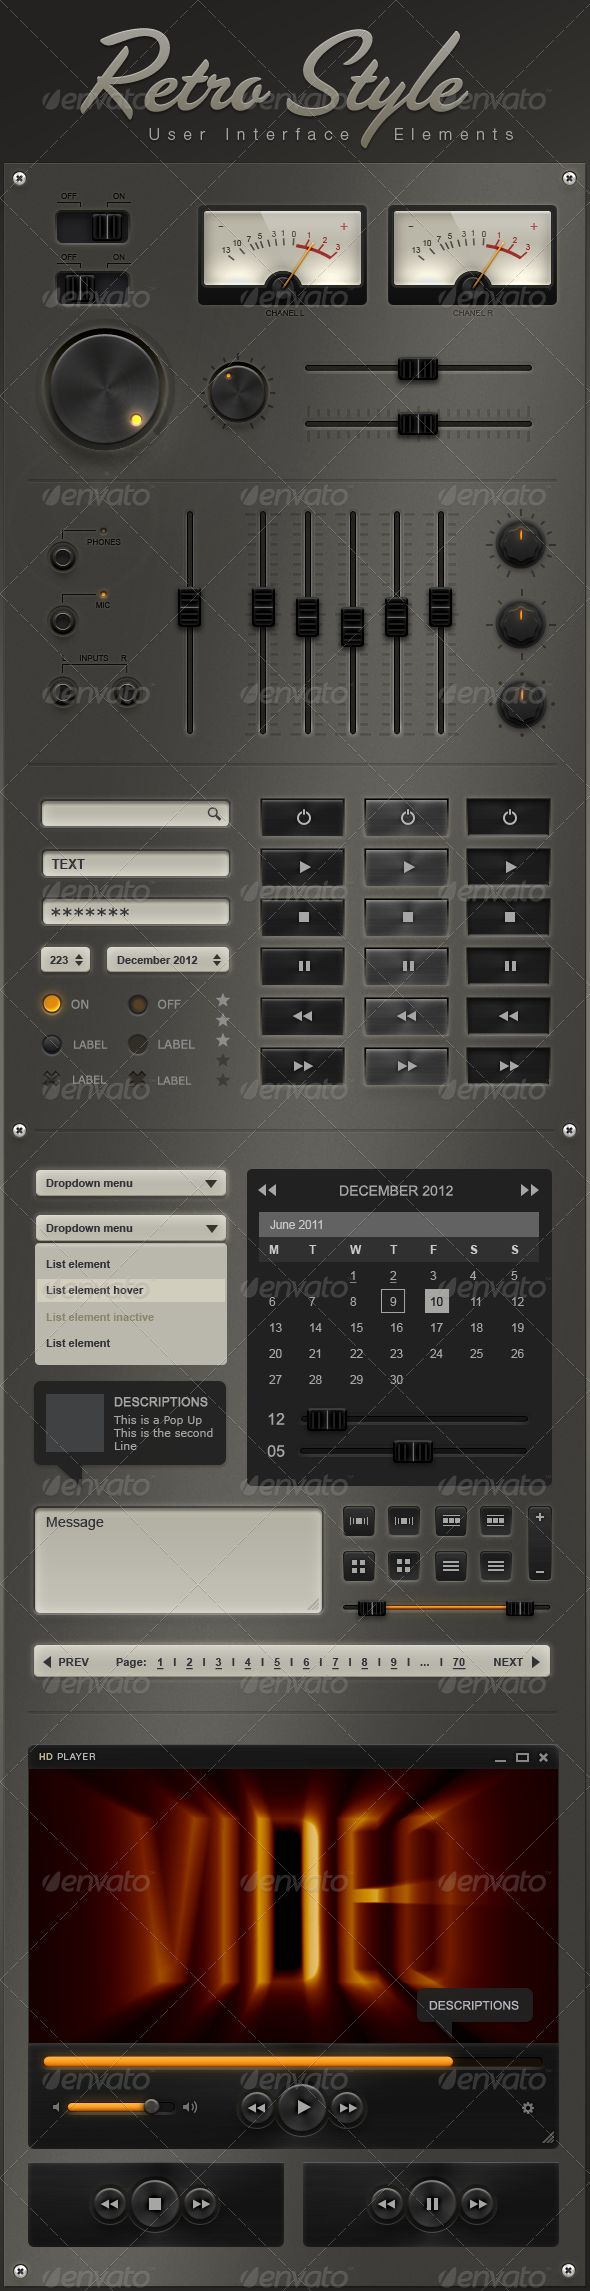 Retro User Interface Elements  #GraphicRiver        Retro User Interface Elements  326 PPI (pixels per inch)   Retina Display – ready   iPad – ready   iPhone 4 – ready   Android – ready  Blackberry – ready  professionally made – modular – fully editable – ready to use Highly customizable:   Professionally made .psd file (Adobe Photoshop File) with organized, fully editable and ready to use interface design elements. How You Can Use It:   Each element is a high-quality, perfectly organized…